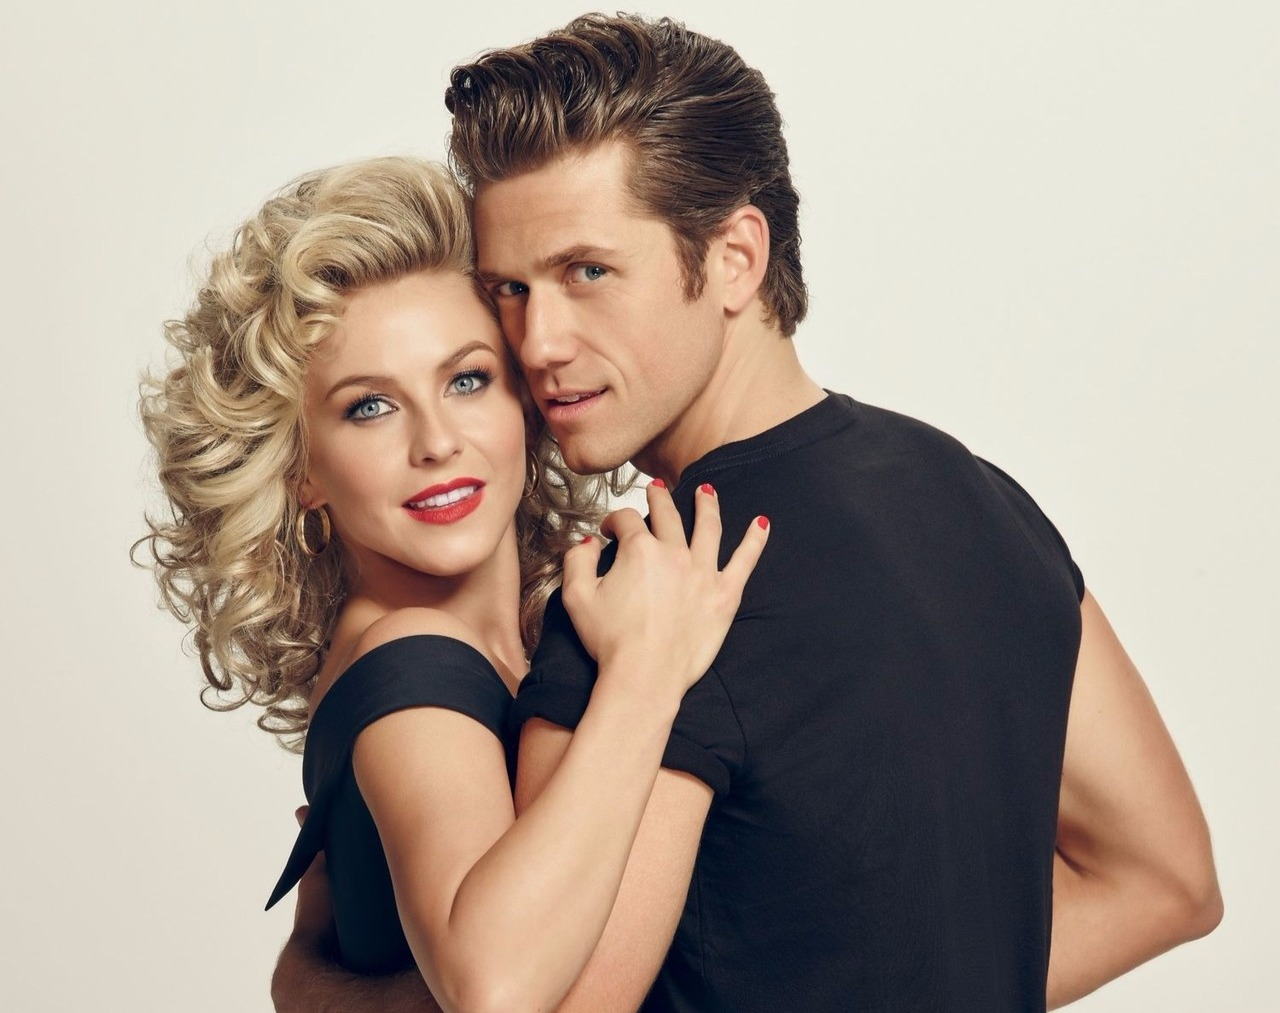 Aaron Tveit in an embrace with Grease co-star Julianne Hough